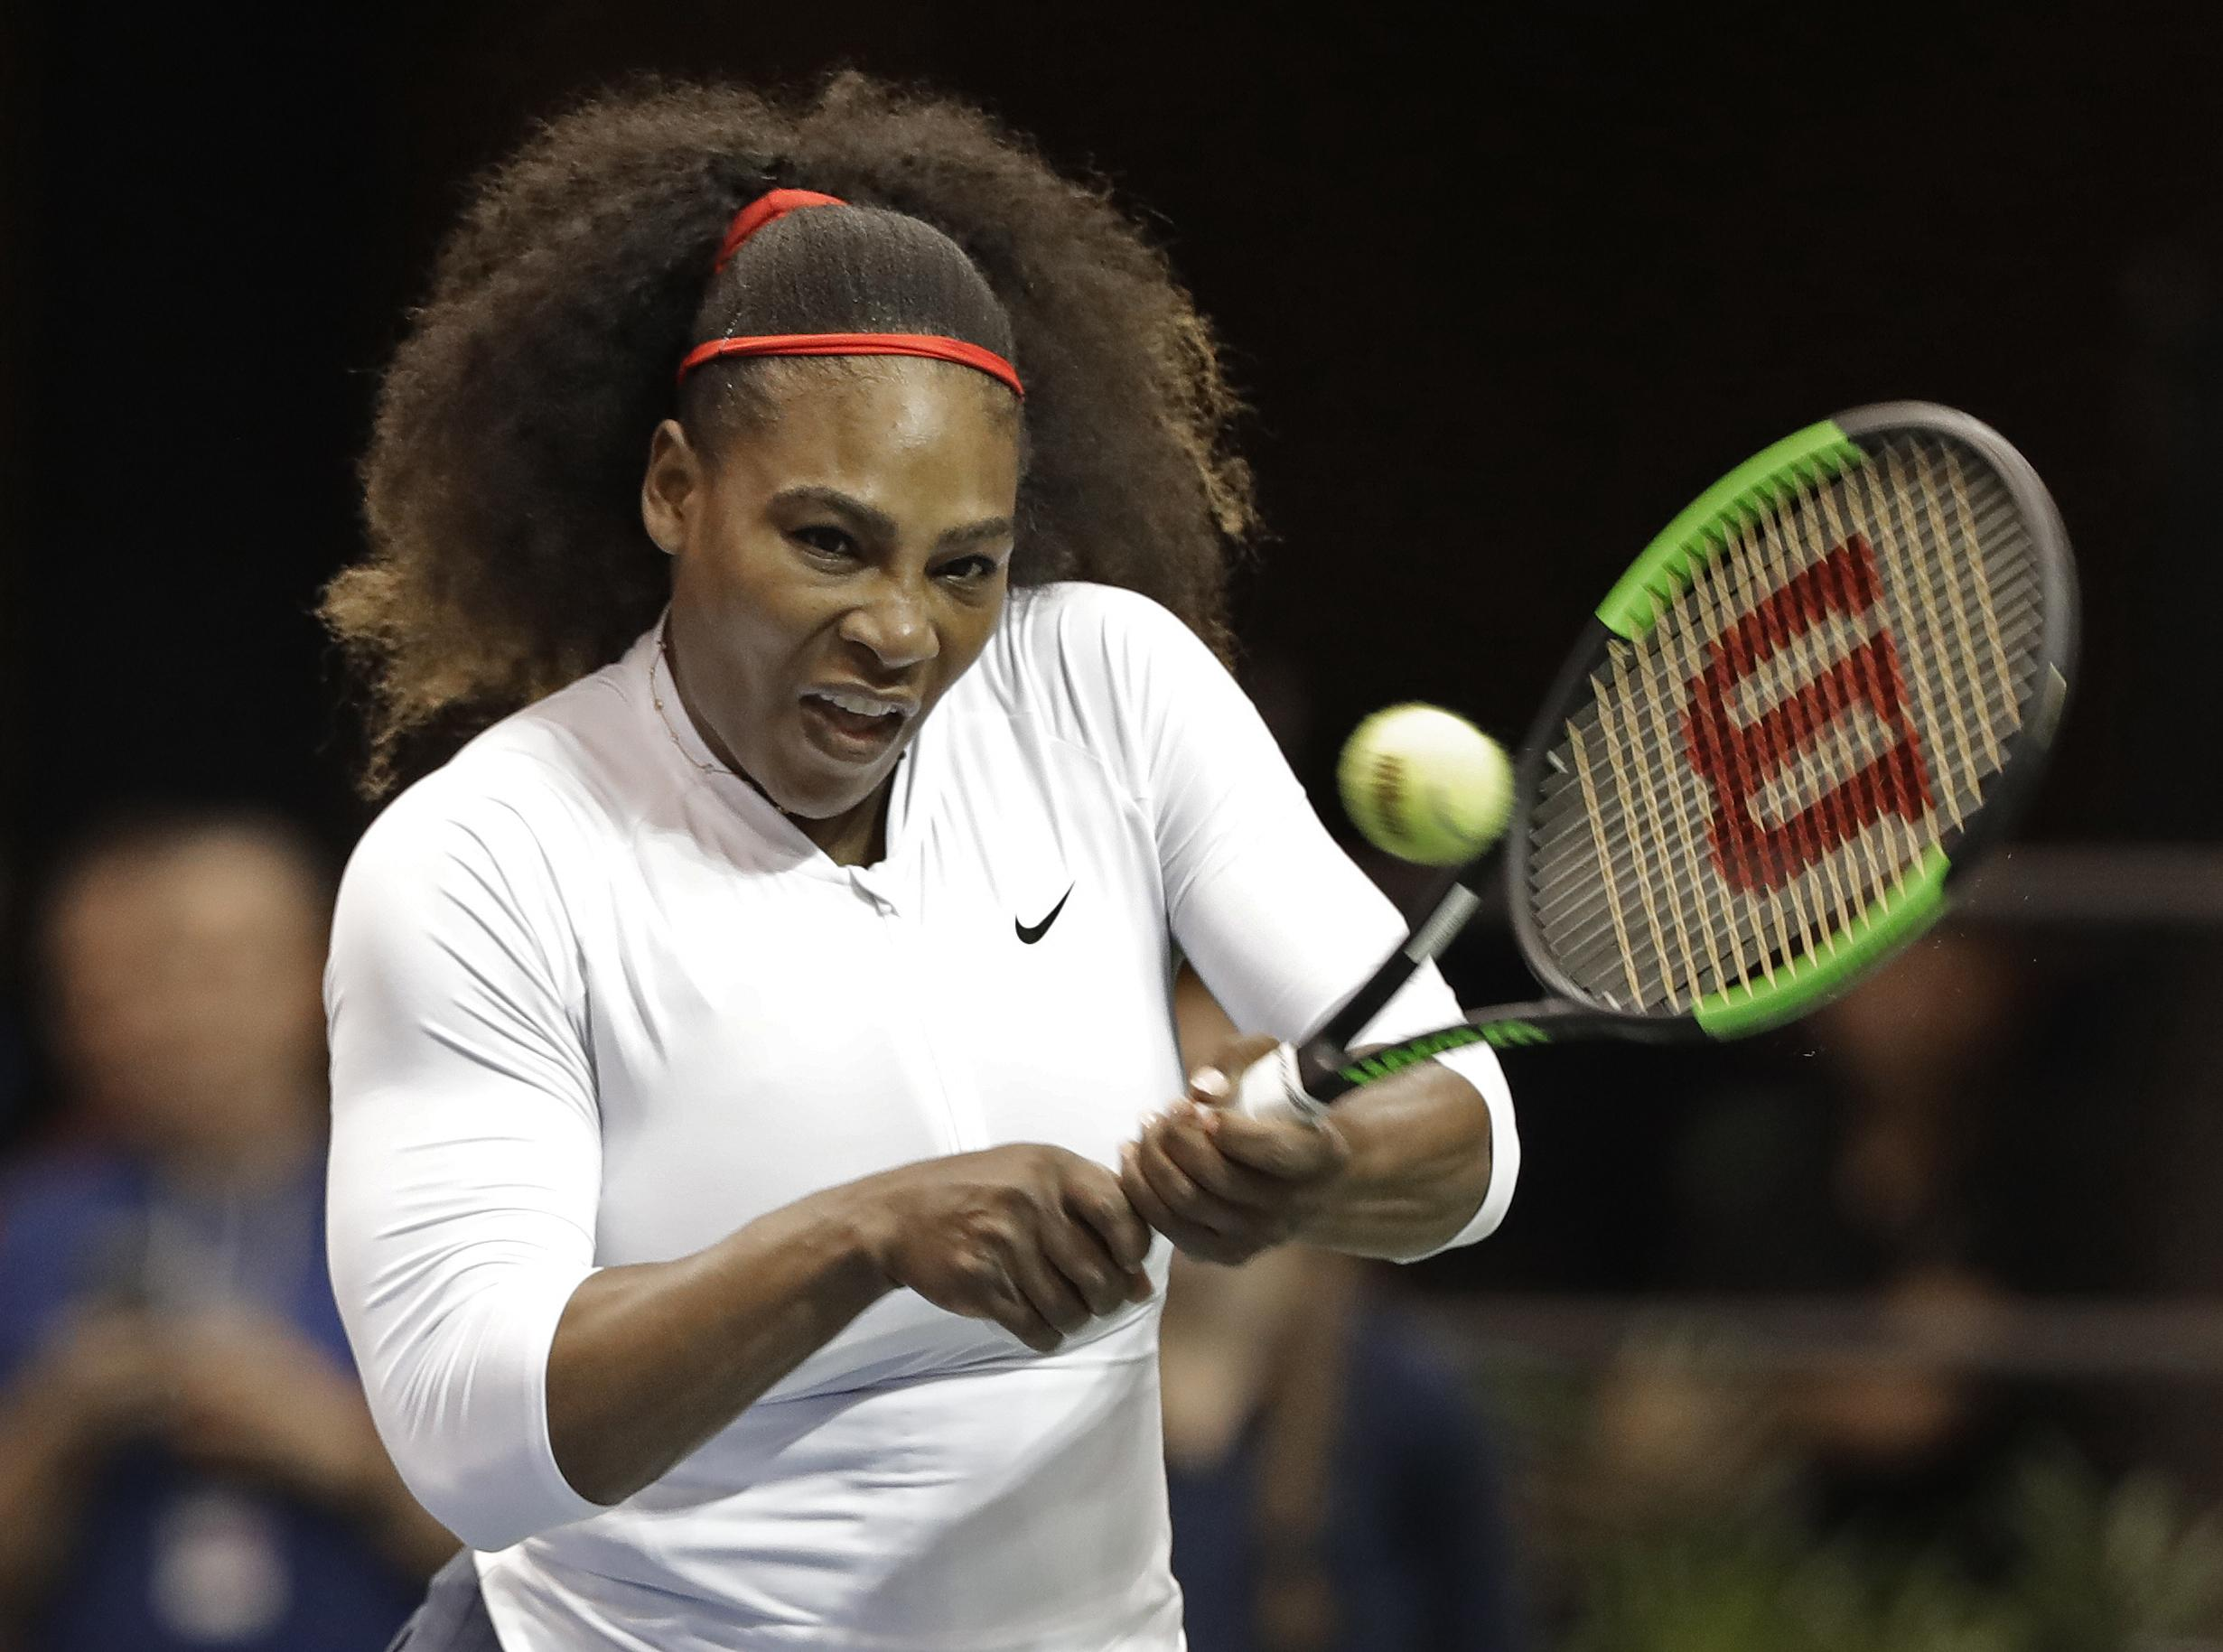 The seven-time Wimbledon singles champion, now 36, was returning to the game for the first time since giving birth